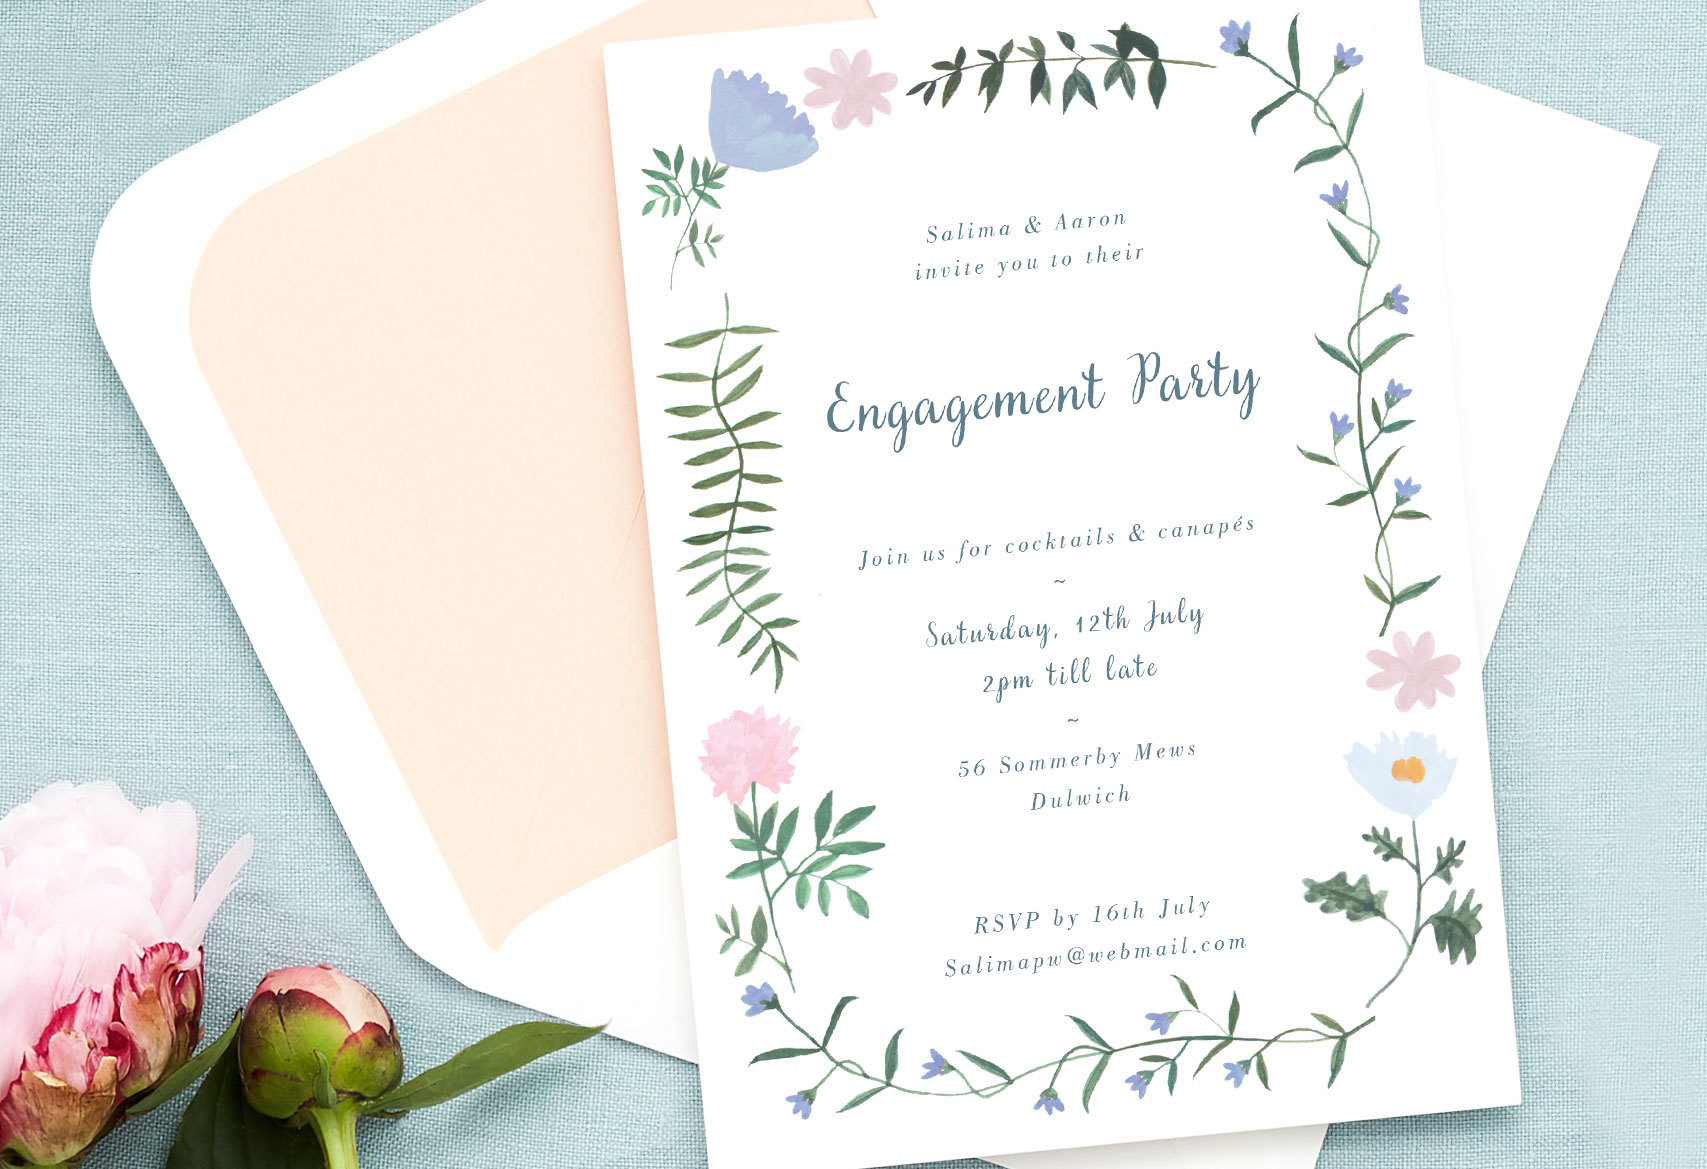 Engagement party invitation wording_cocktails and canapes